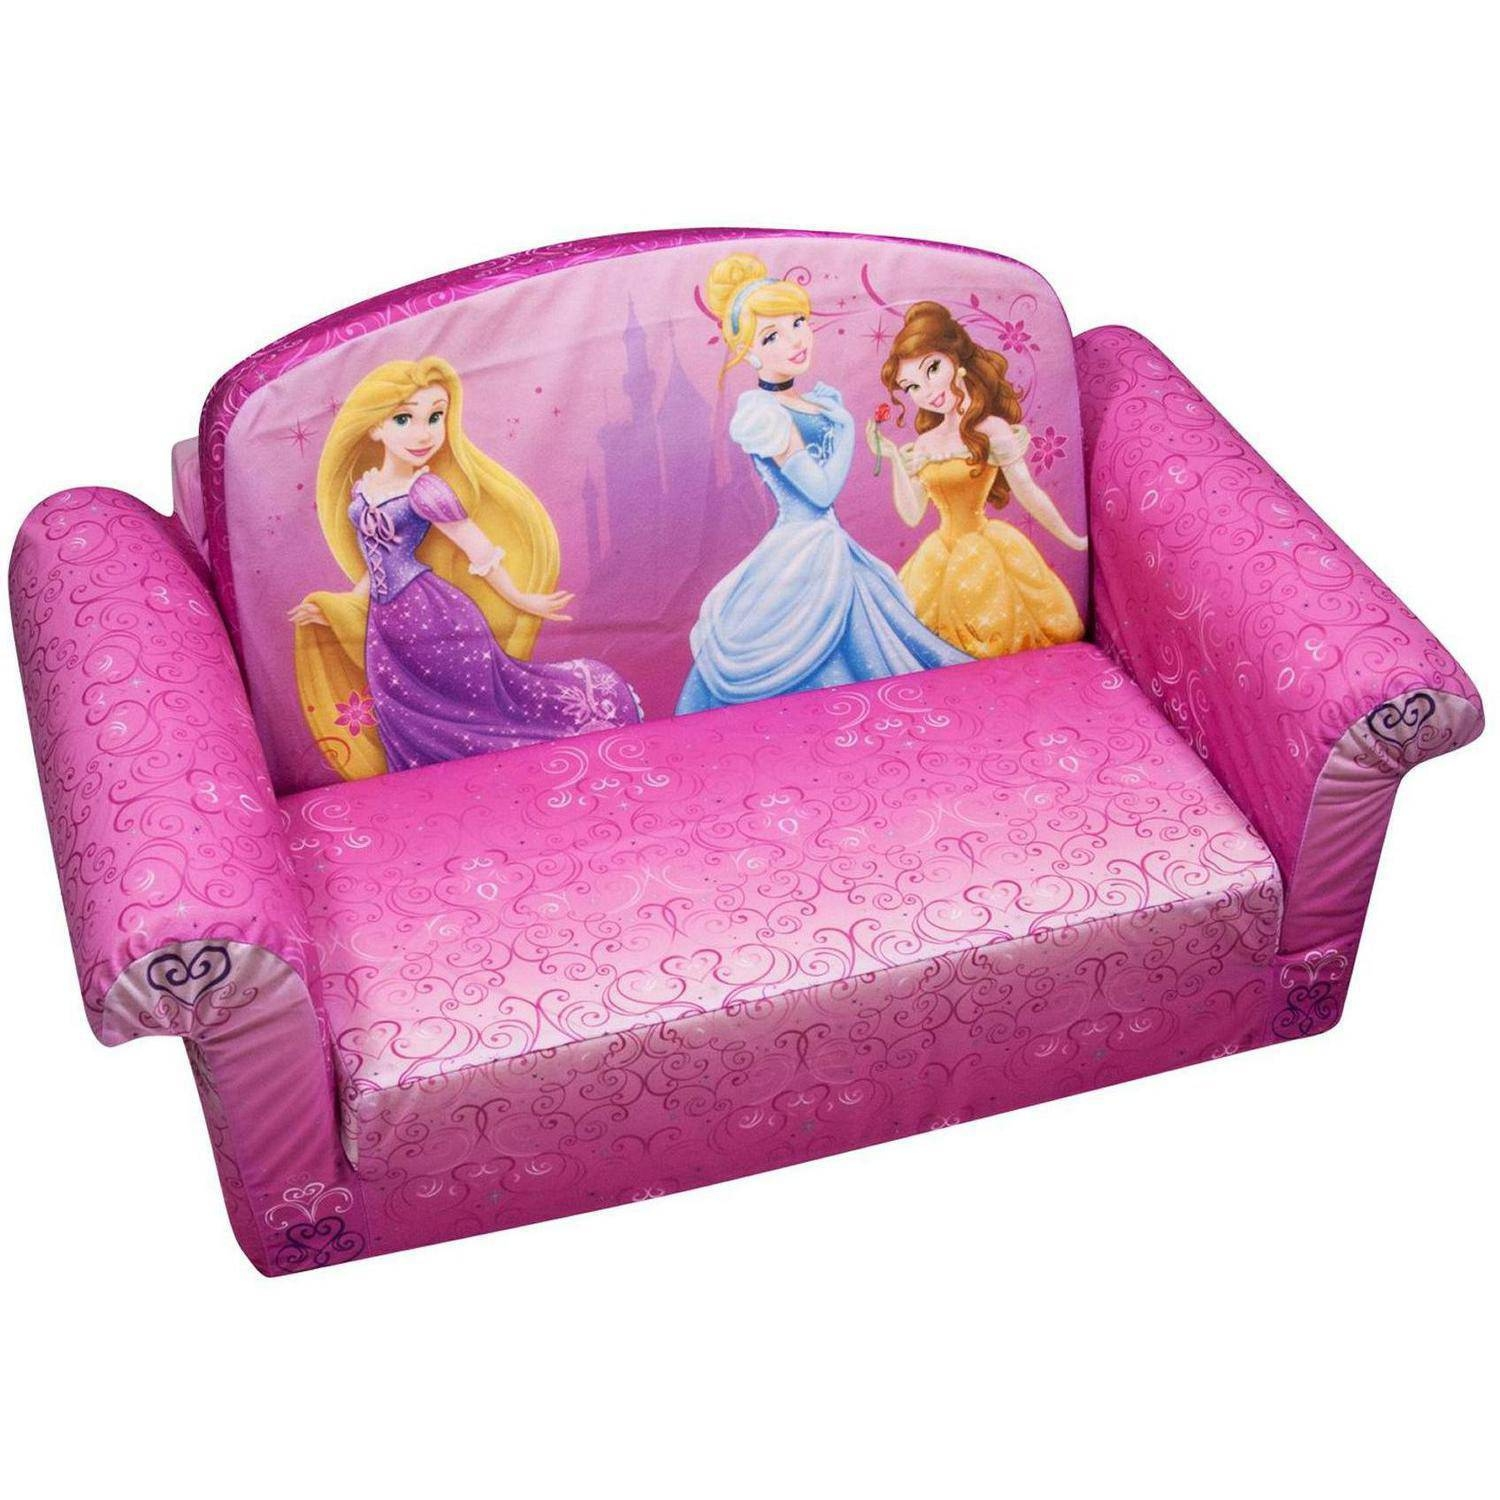 Marshmallow 2-In-1 Flip Open Sofa, Disney Princess - Walmart within Elmo Flip Open Sofas (Image 6 of 15)